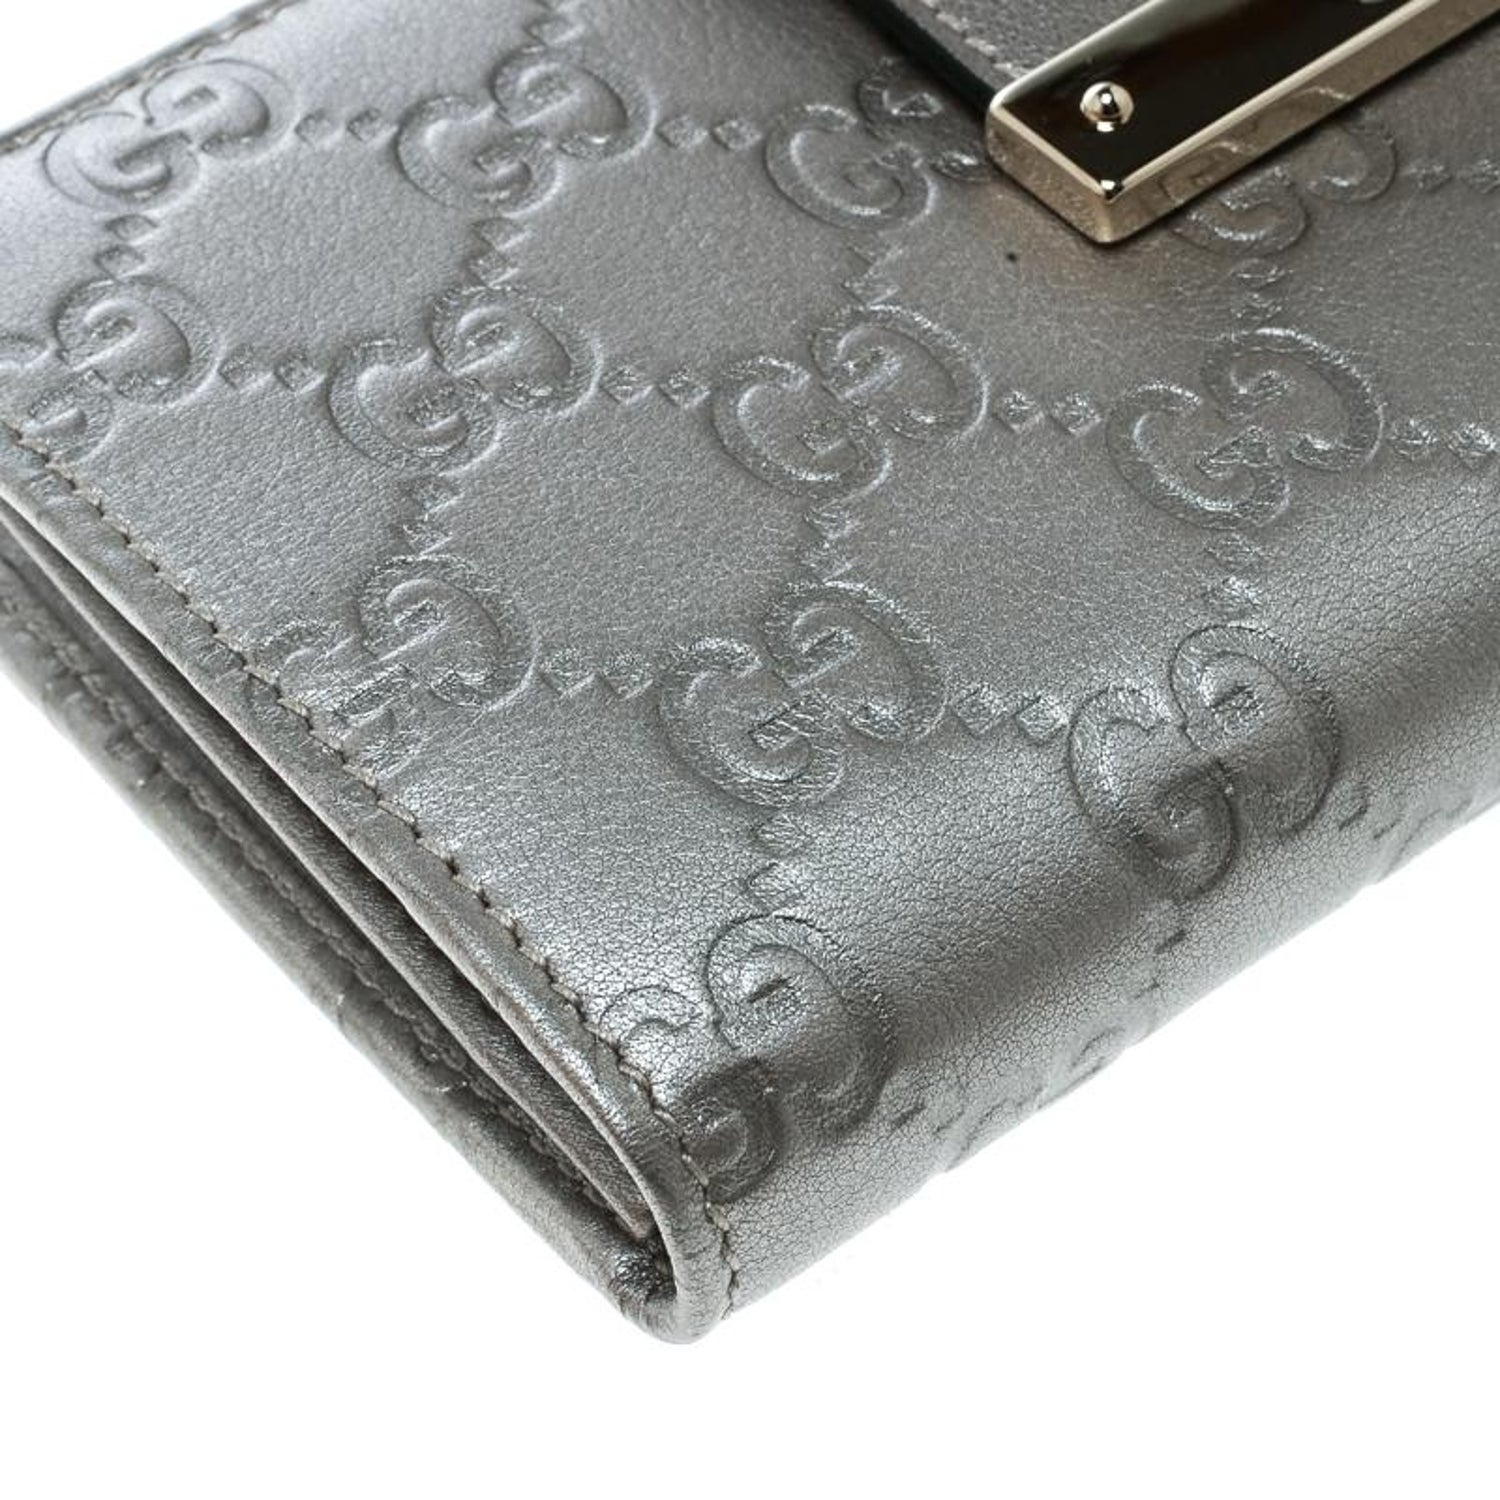 86136a134e63 Gucci Grey Guccissima Leather Web Logo Continental Wallet For Sale at  1stdibs